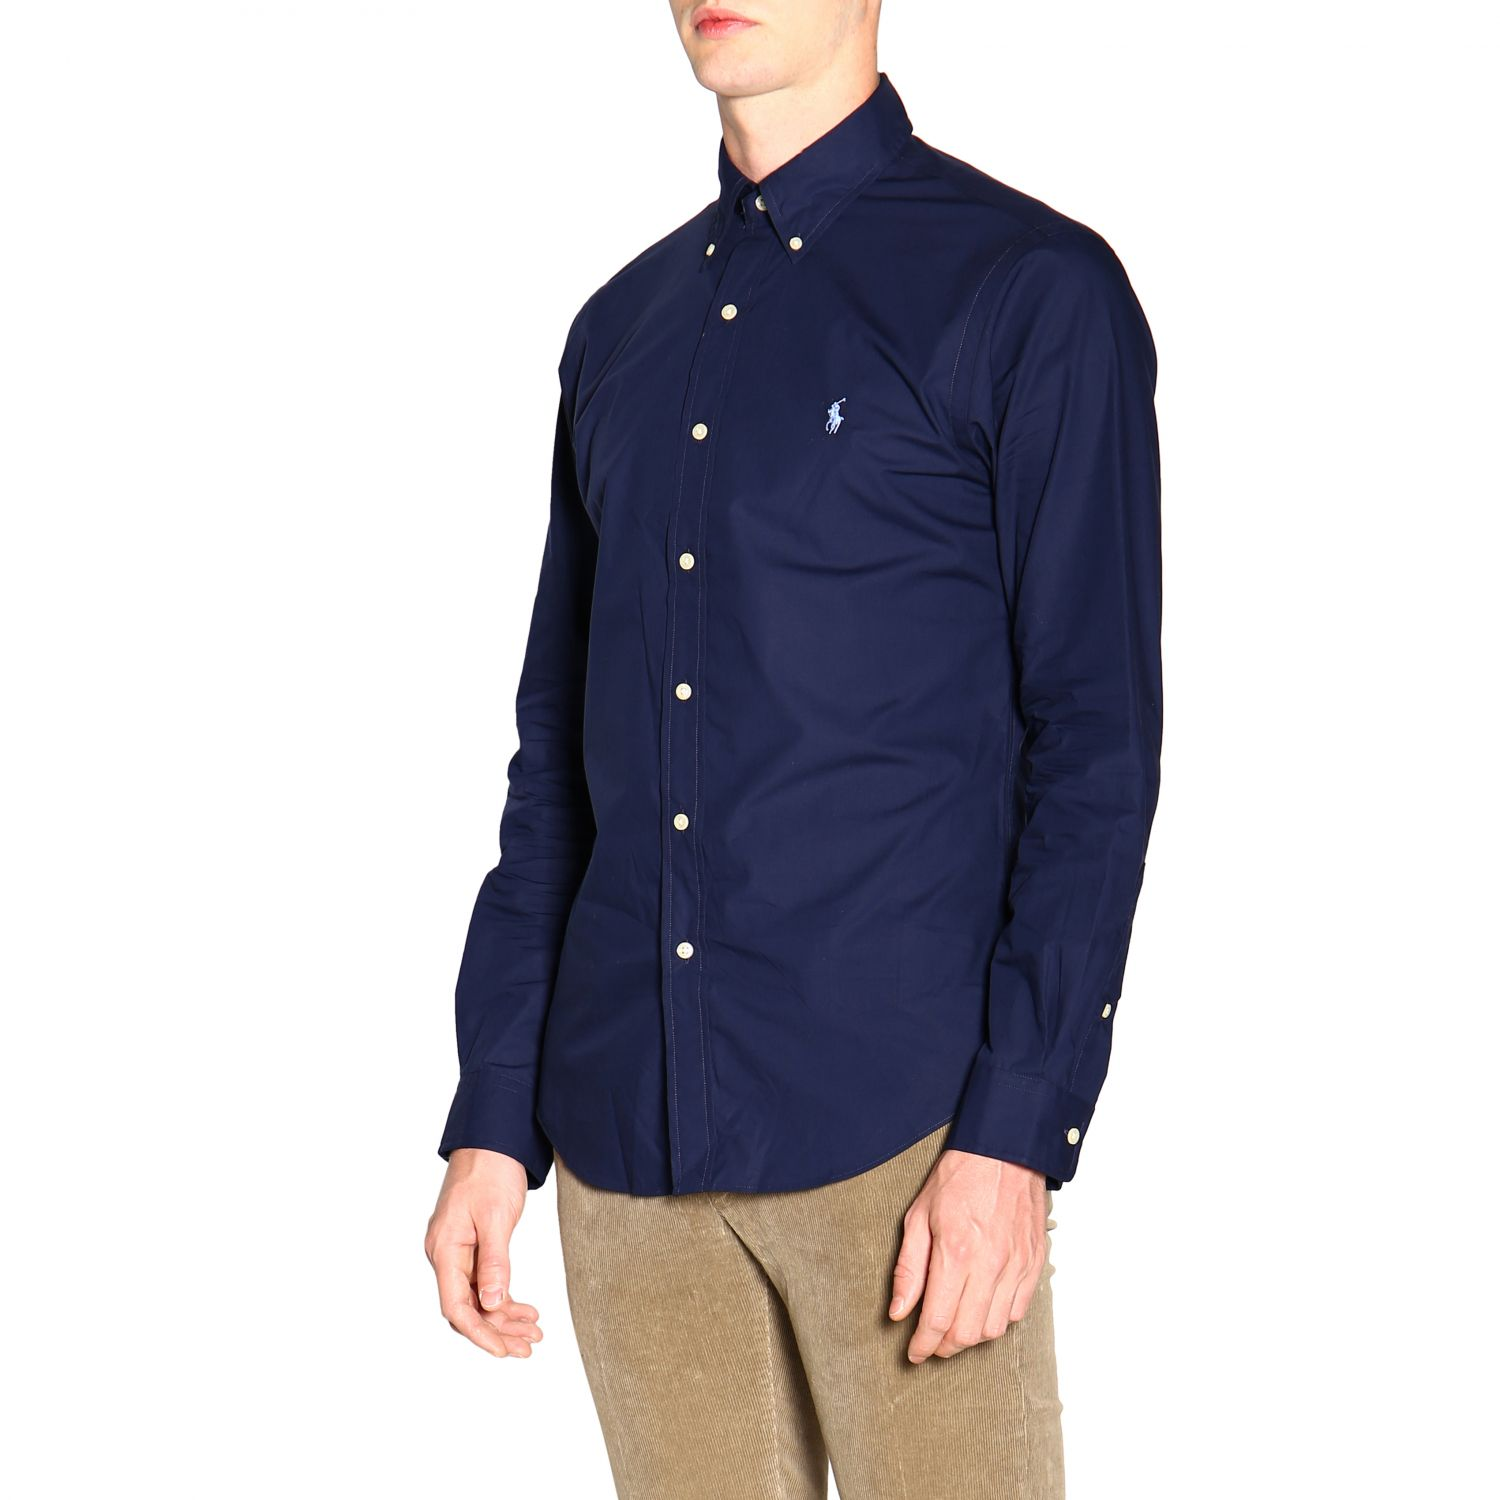 Natural stretch custom fit shirt with button down collar and Polo Ralph Lauren logo blue 4